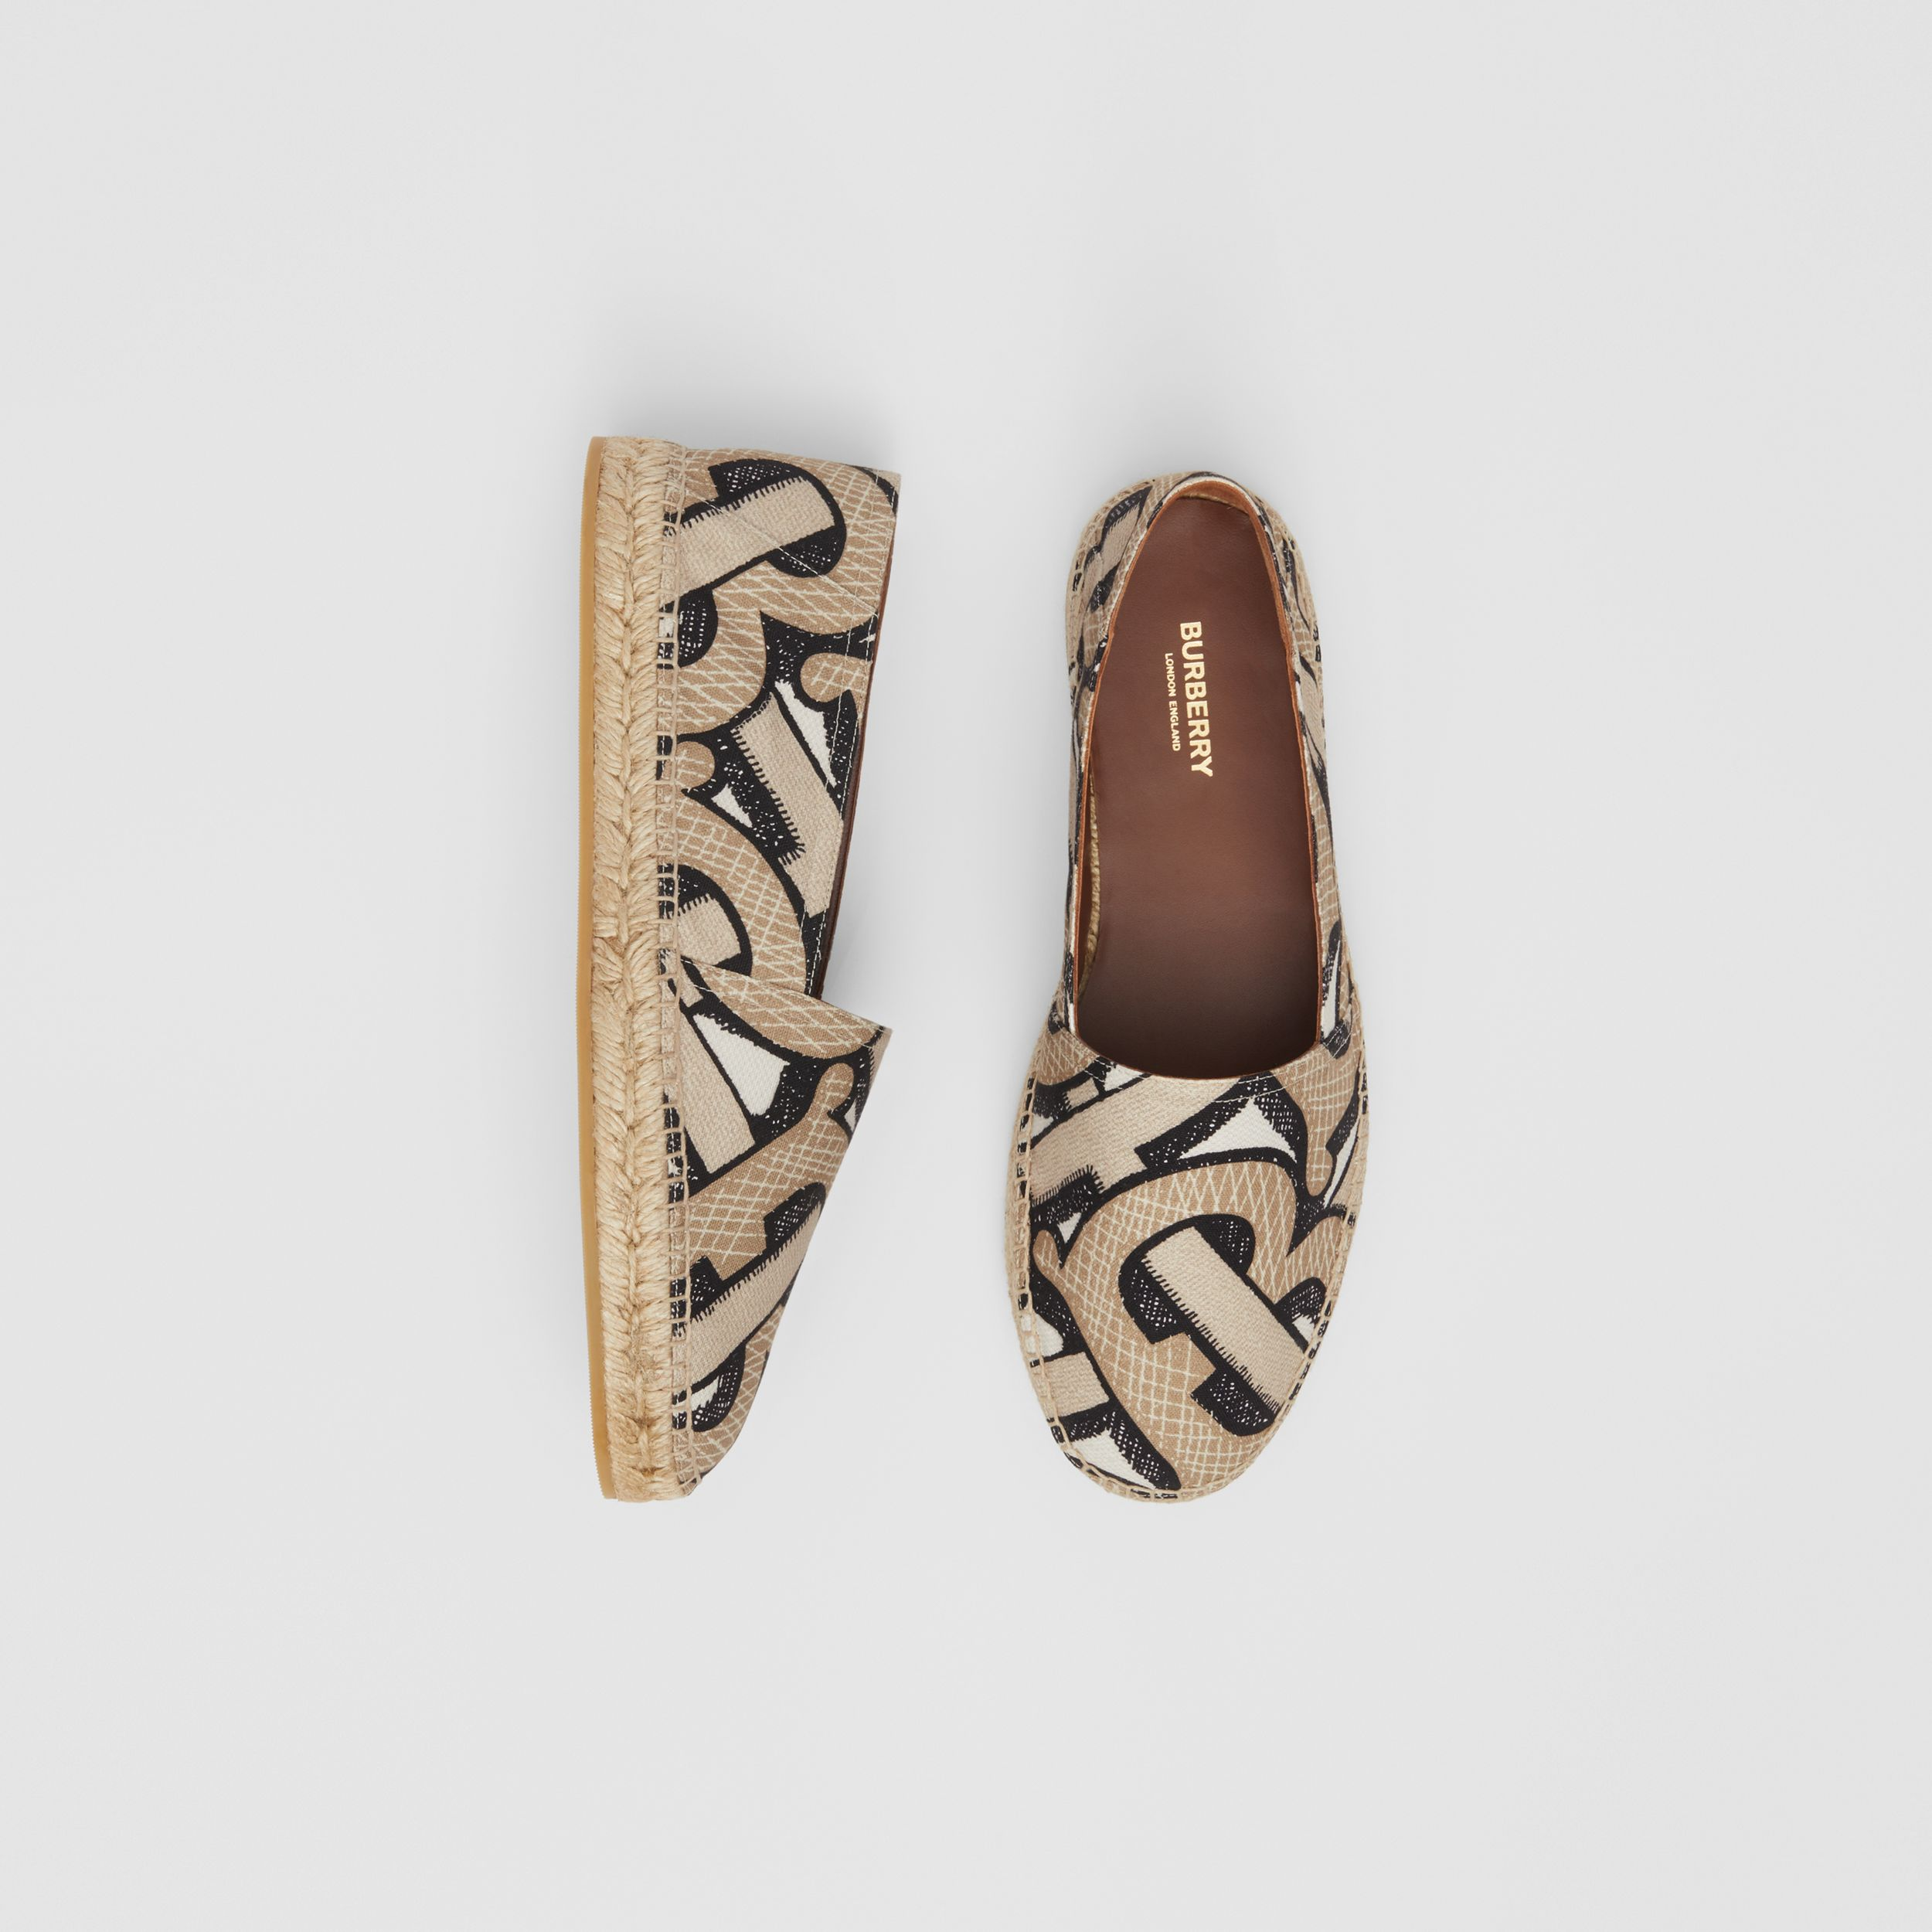 Monogram Print Cotton Canvas Espadrilles in Dark Beige | Burberry - 1